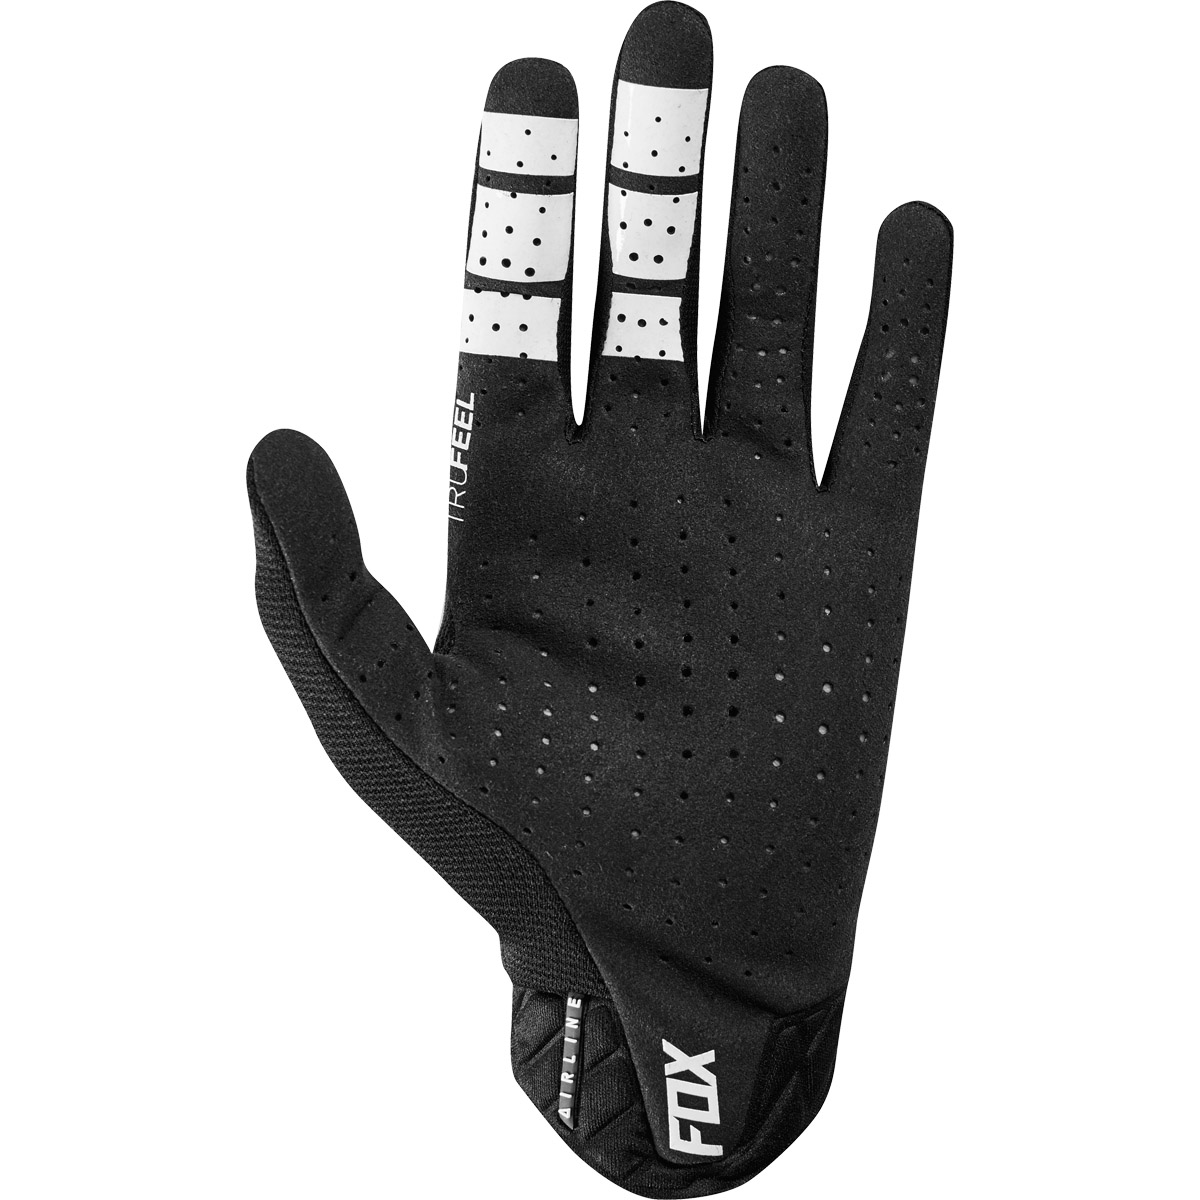 21740-001 Fox Racing 2019 Airline Motocross Offroad Gloves Black Gants Enduro Crosshandschoenen BMX Downhill Handschuhe